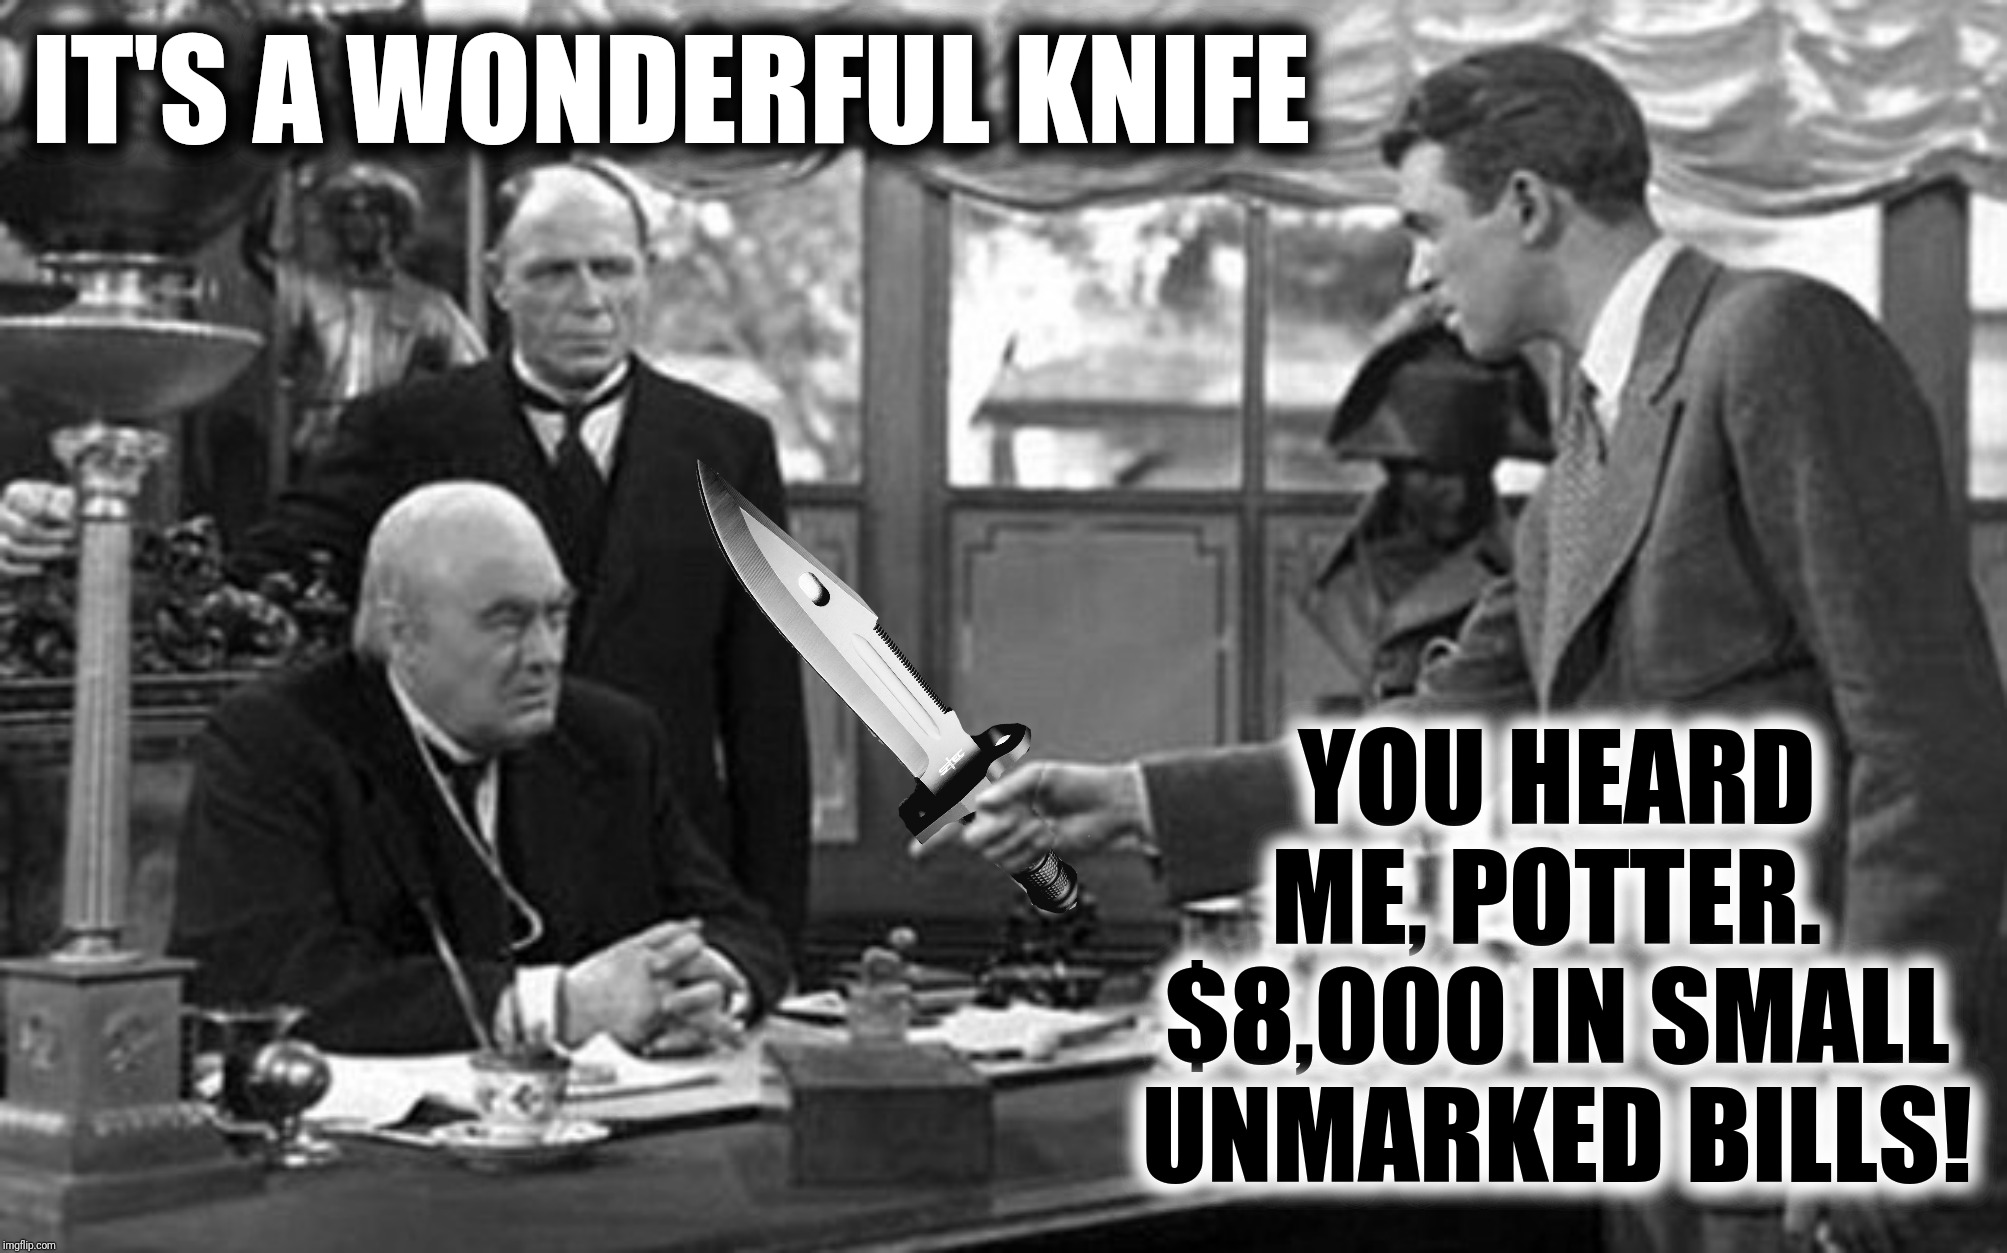 It's A Wonderful Life 2019 | IT'S A WONDERFUL KNIFE YOU HEARD ME, POTTER.  $8,000 IN SMALL UNMARKED BILLS! | image tagged in bad photoshop,it's a wonderful life,knife,george bailey,mr potter | made w/ Imgflip meme maker